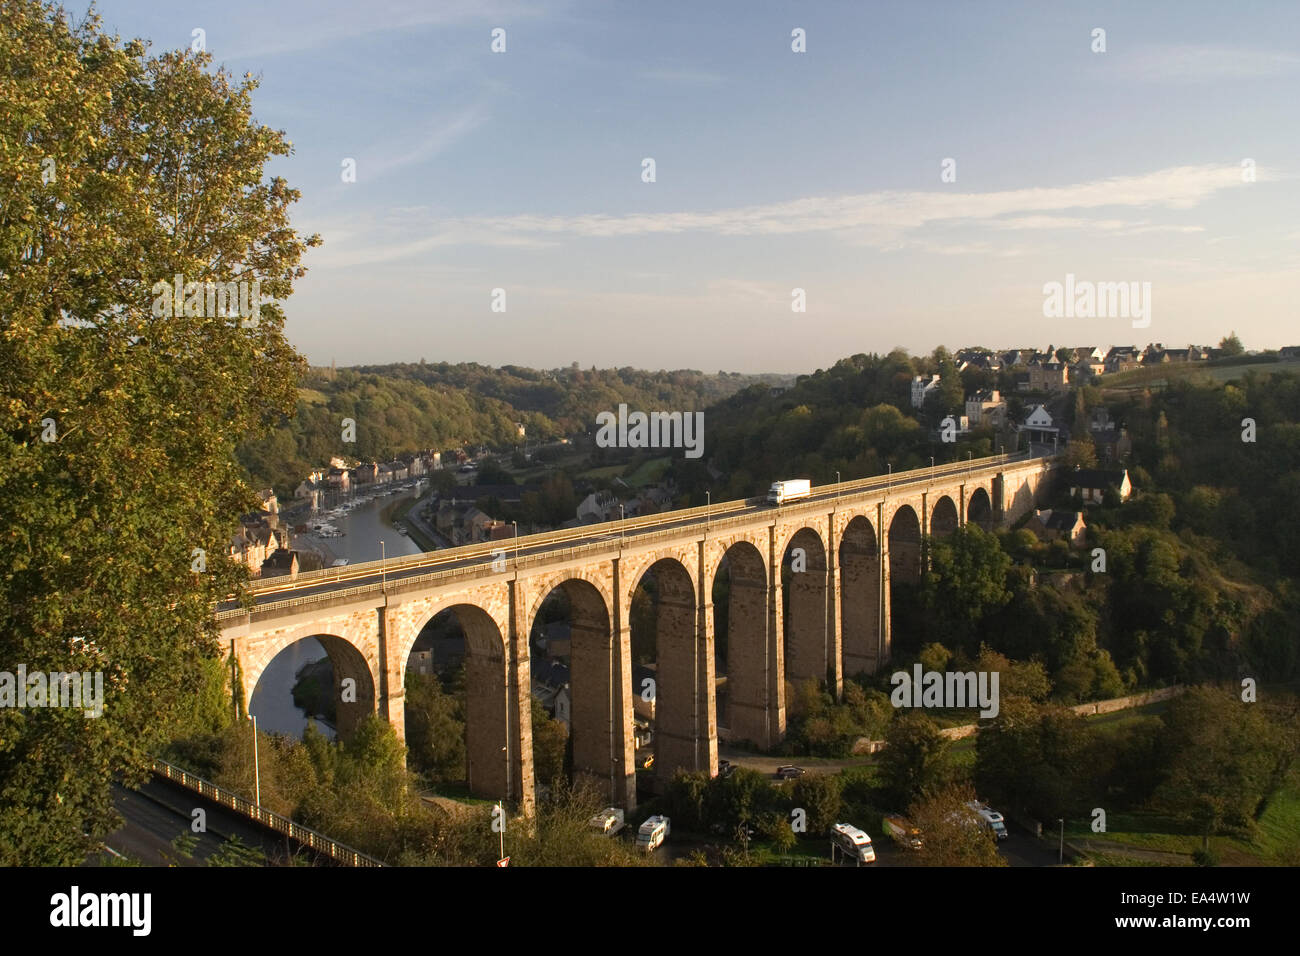 Viaduct over the River Rance, Dinan Stock Photo